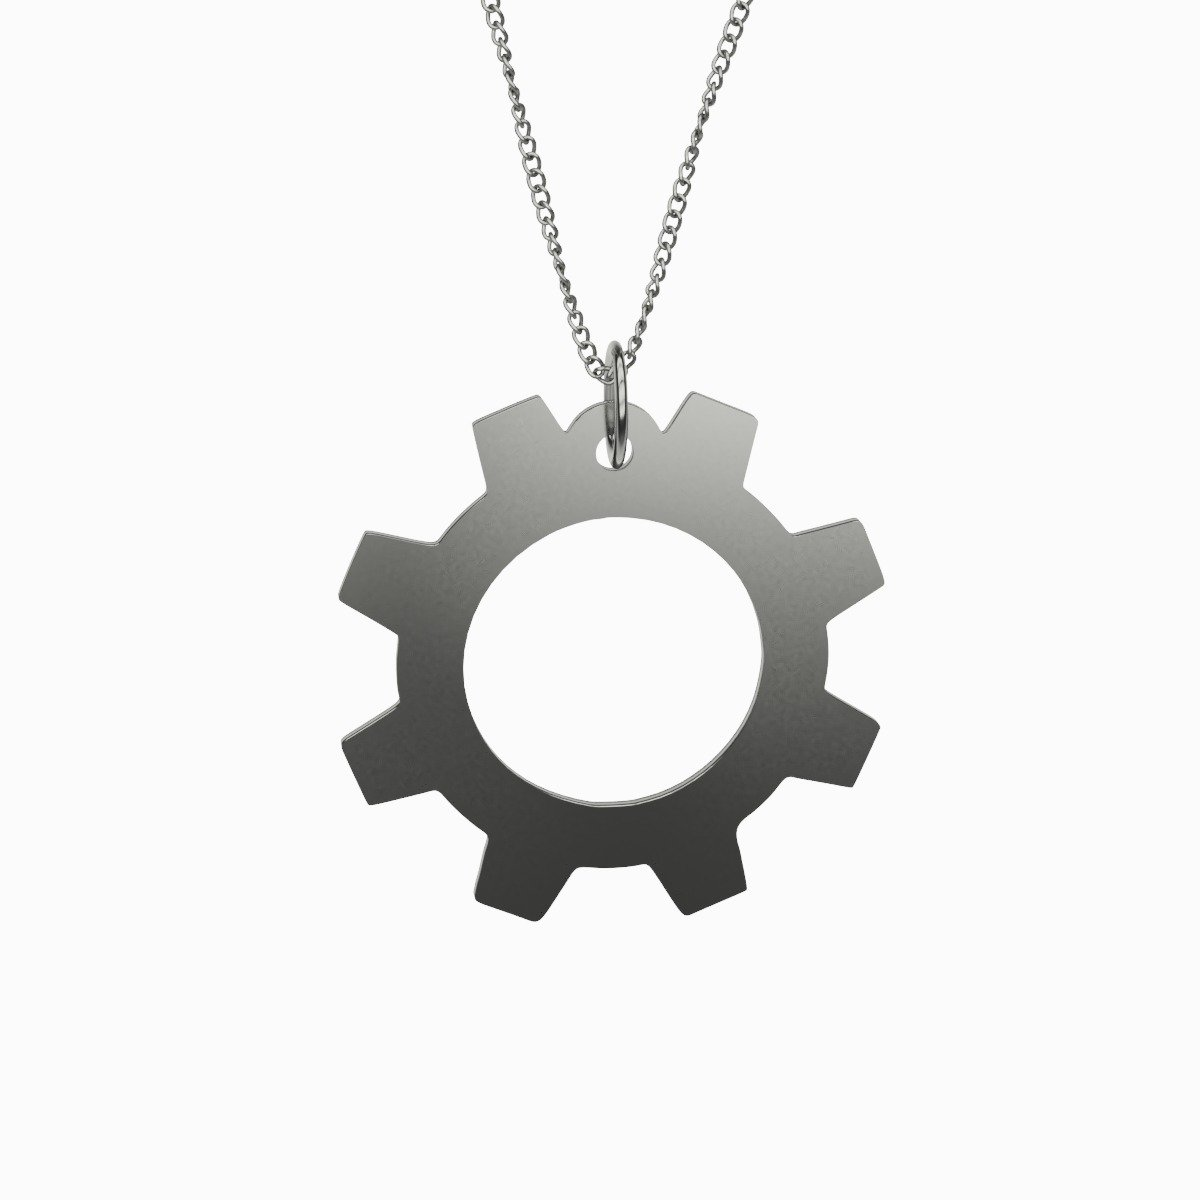 Gear Silver Plated Pendant